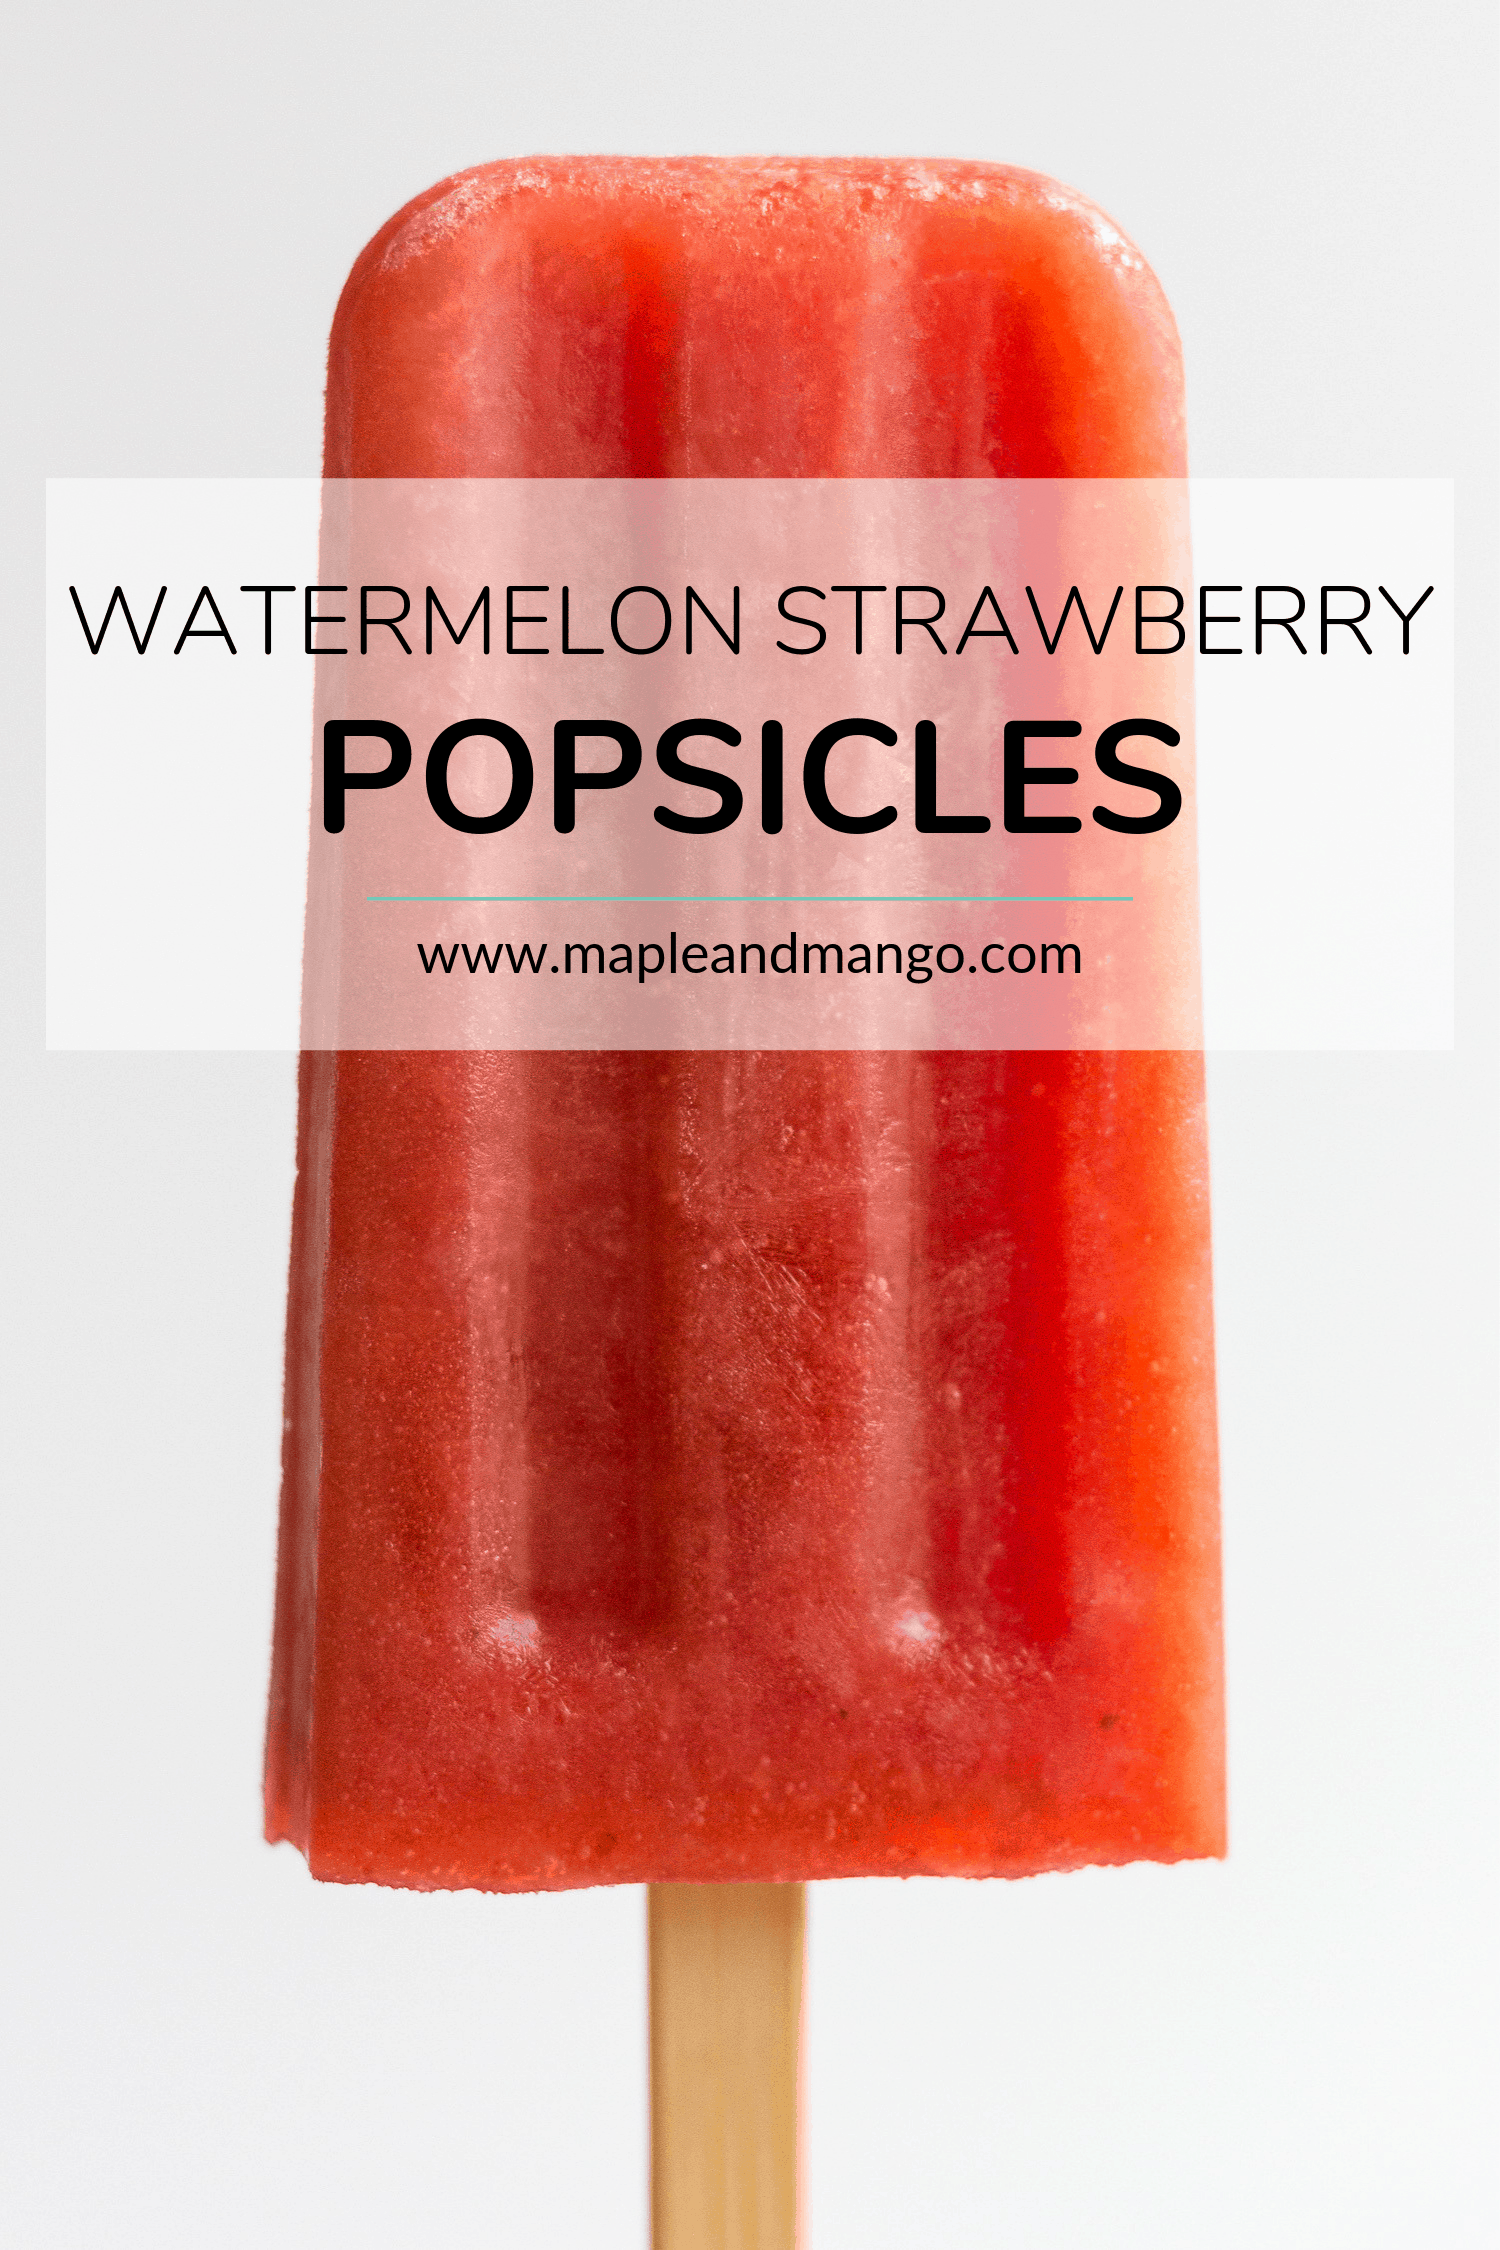 watermelon strawberry popsicle with title overlay for Pinterest